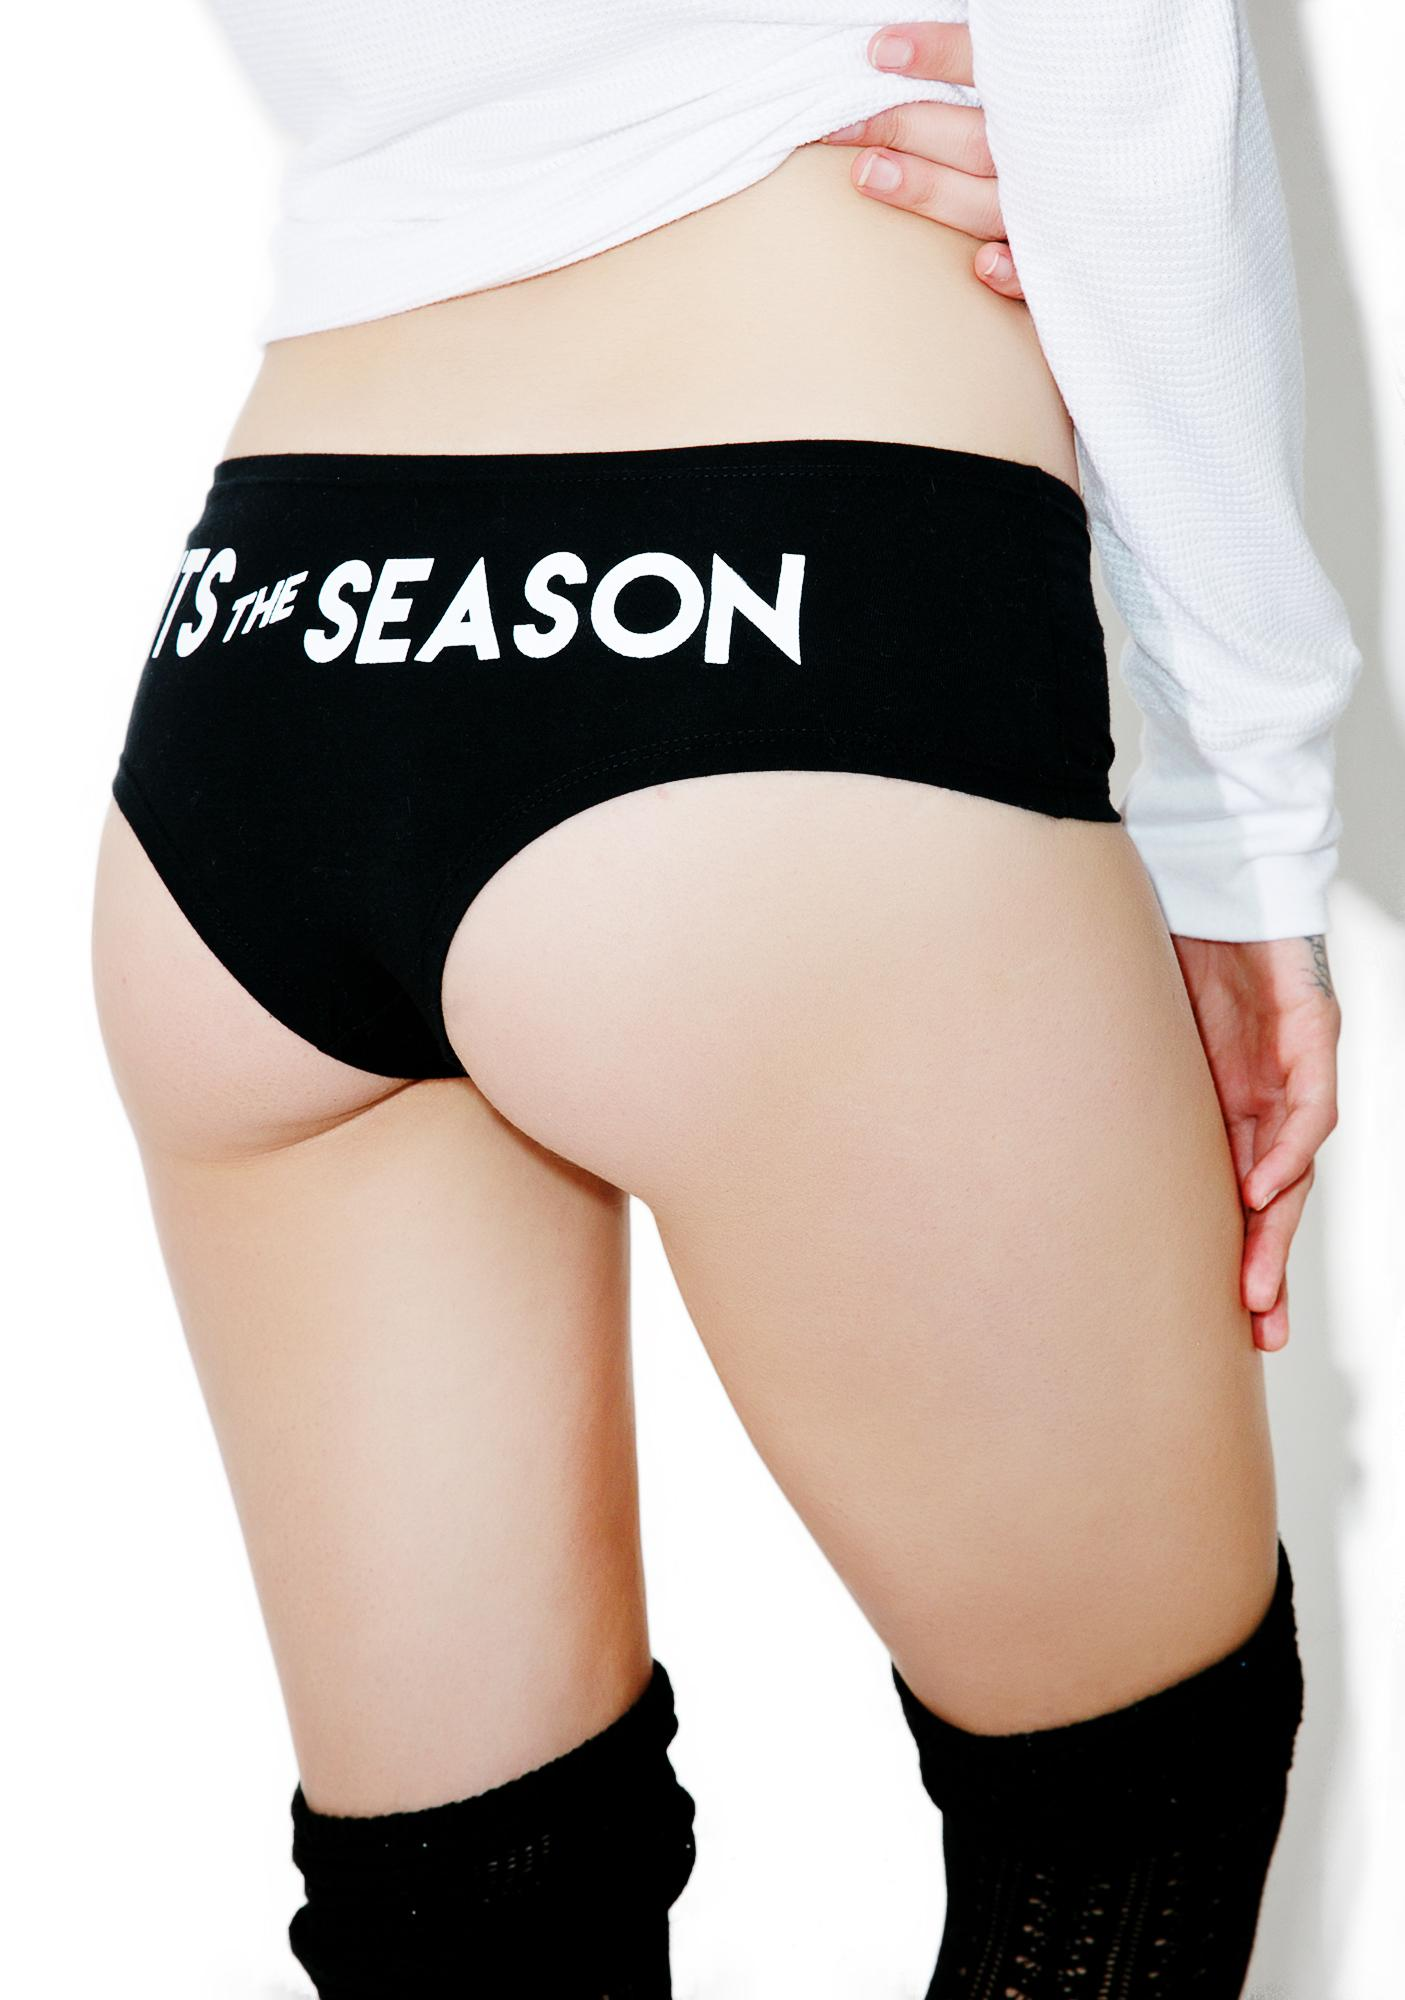 Tits The Season Cheeky Panty